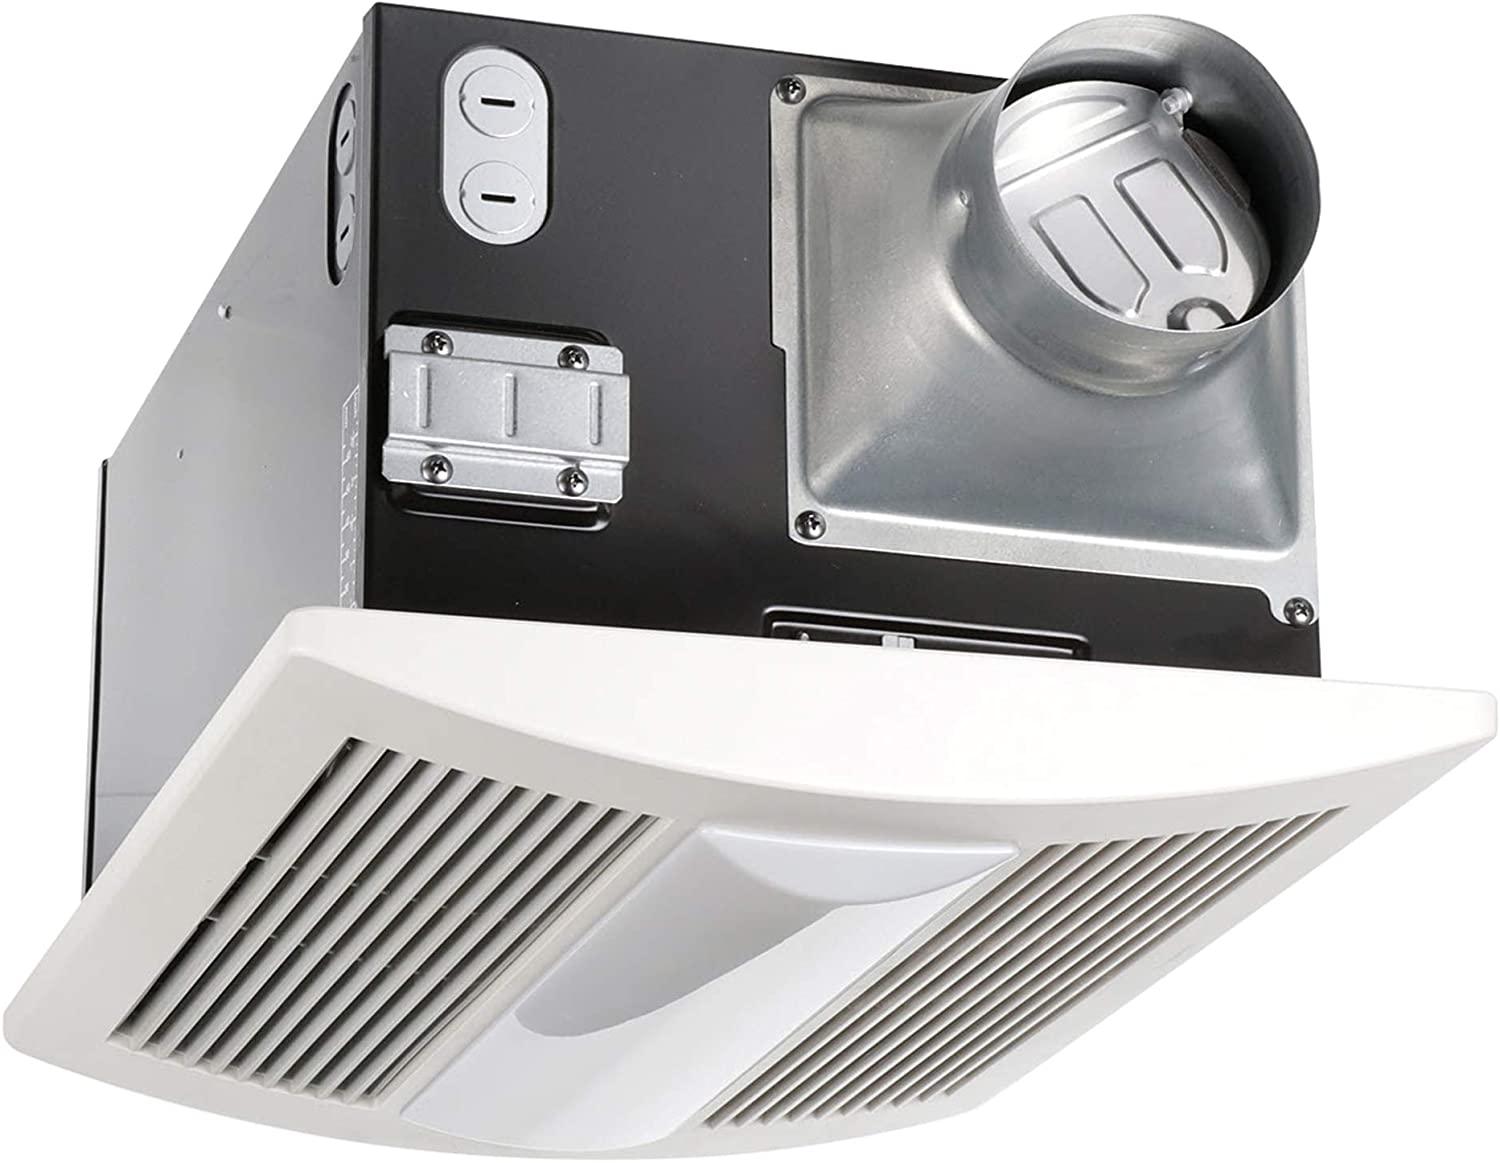 5 Bathroom Exhaust Fans With Light And Heater Features